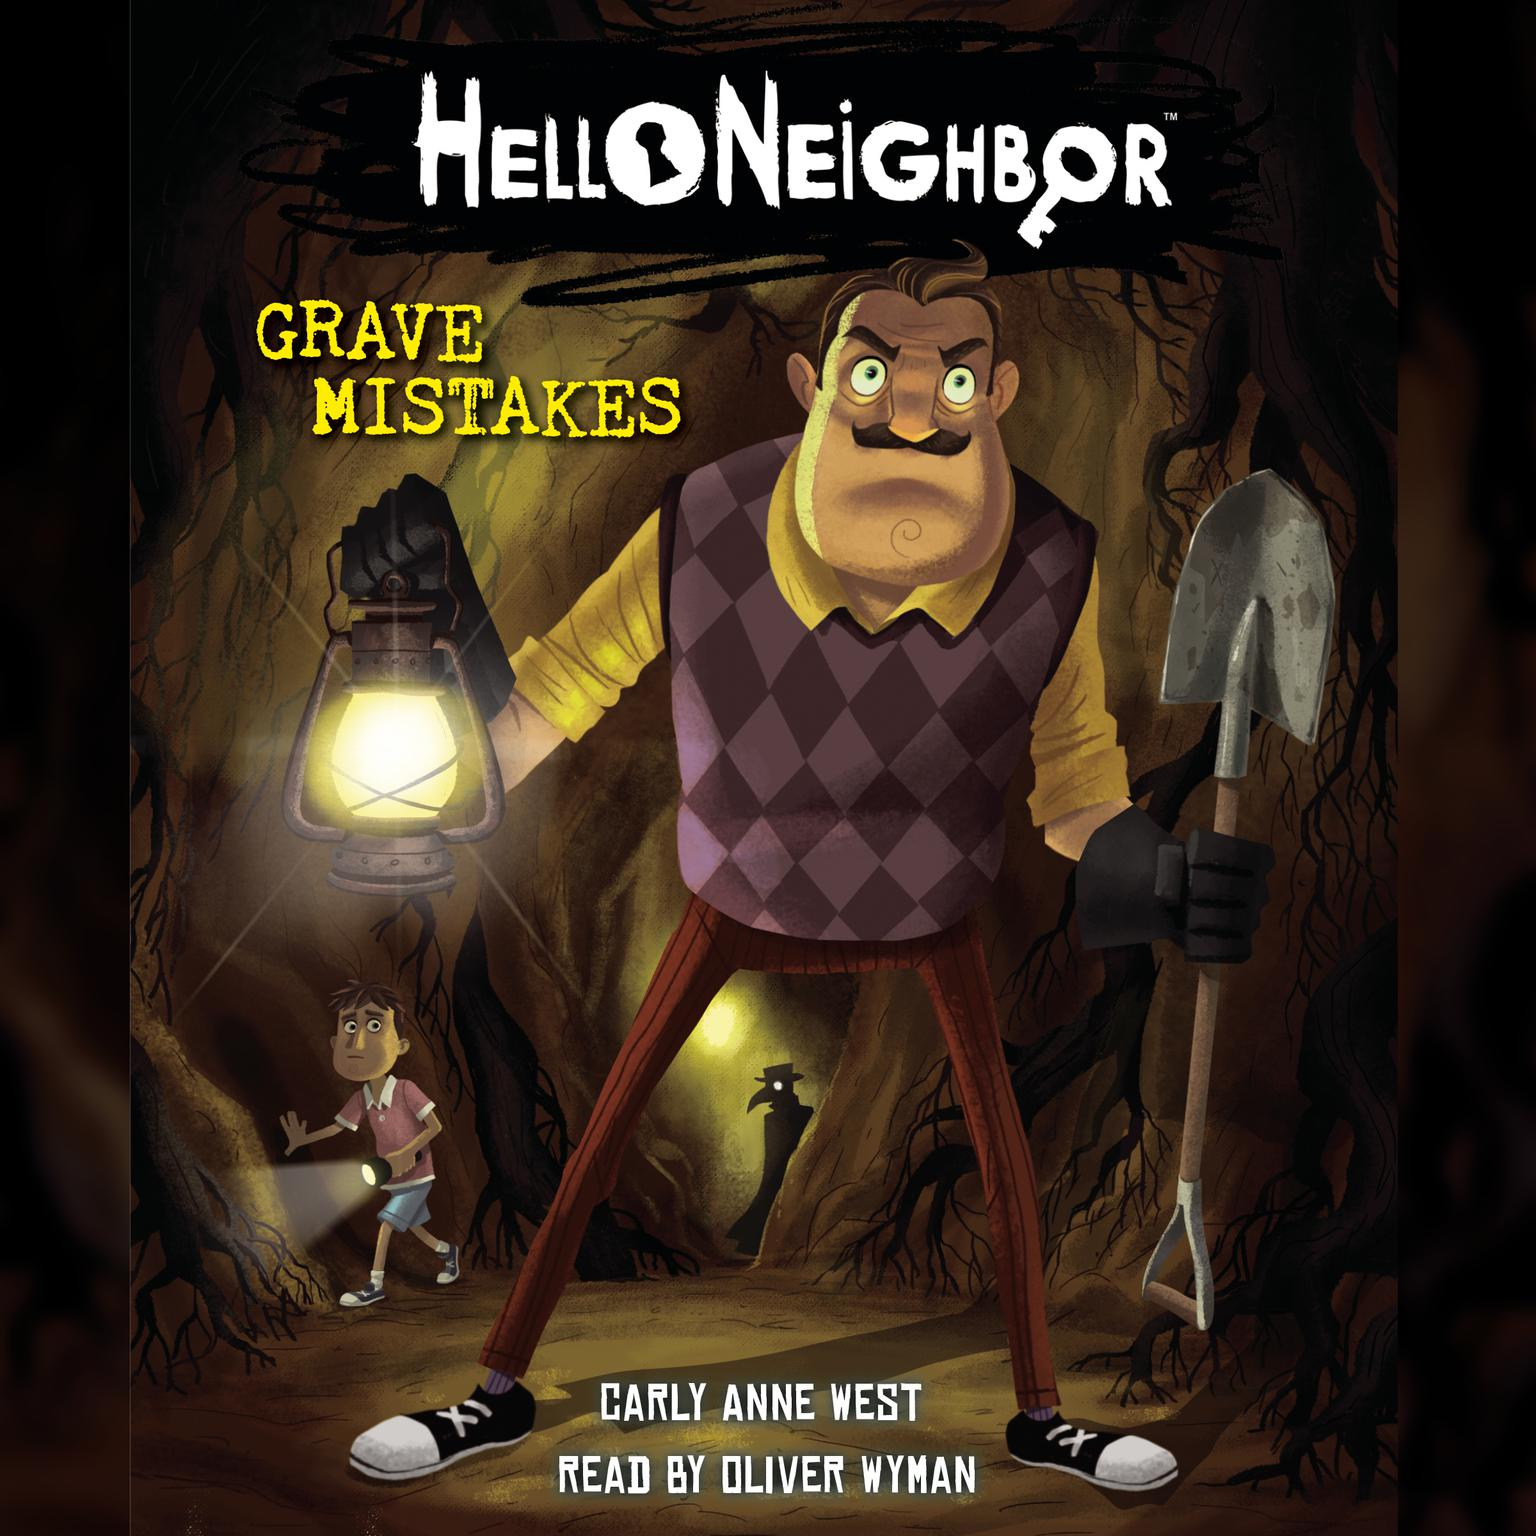 Grave Mistakes (Hello Neighbor #5) (Digital Audio Download Edition) Audiobook, by Carly Anne West